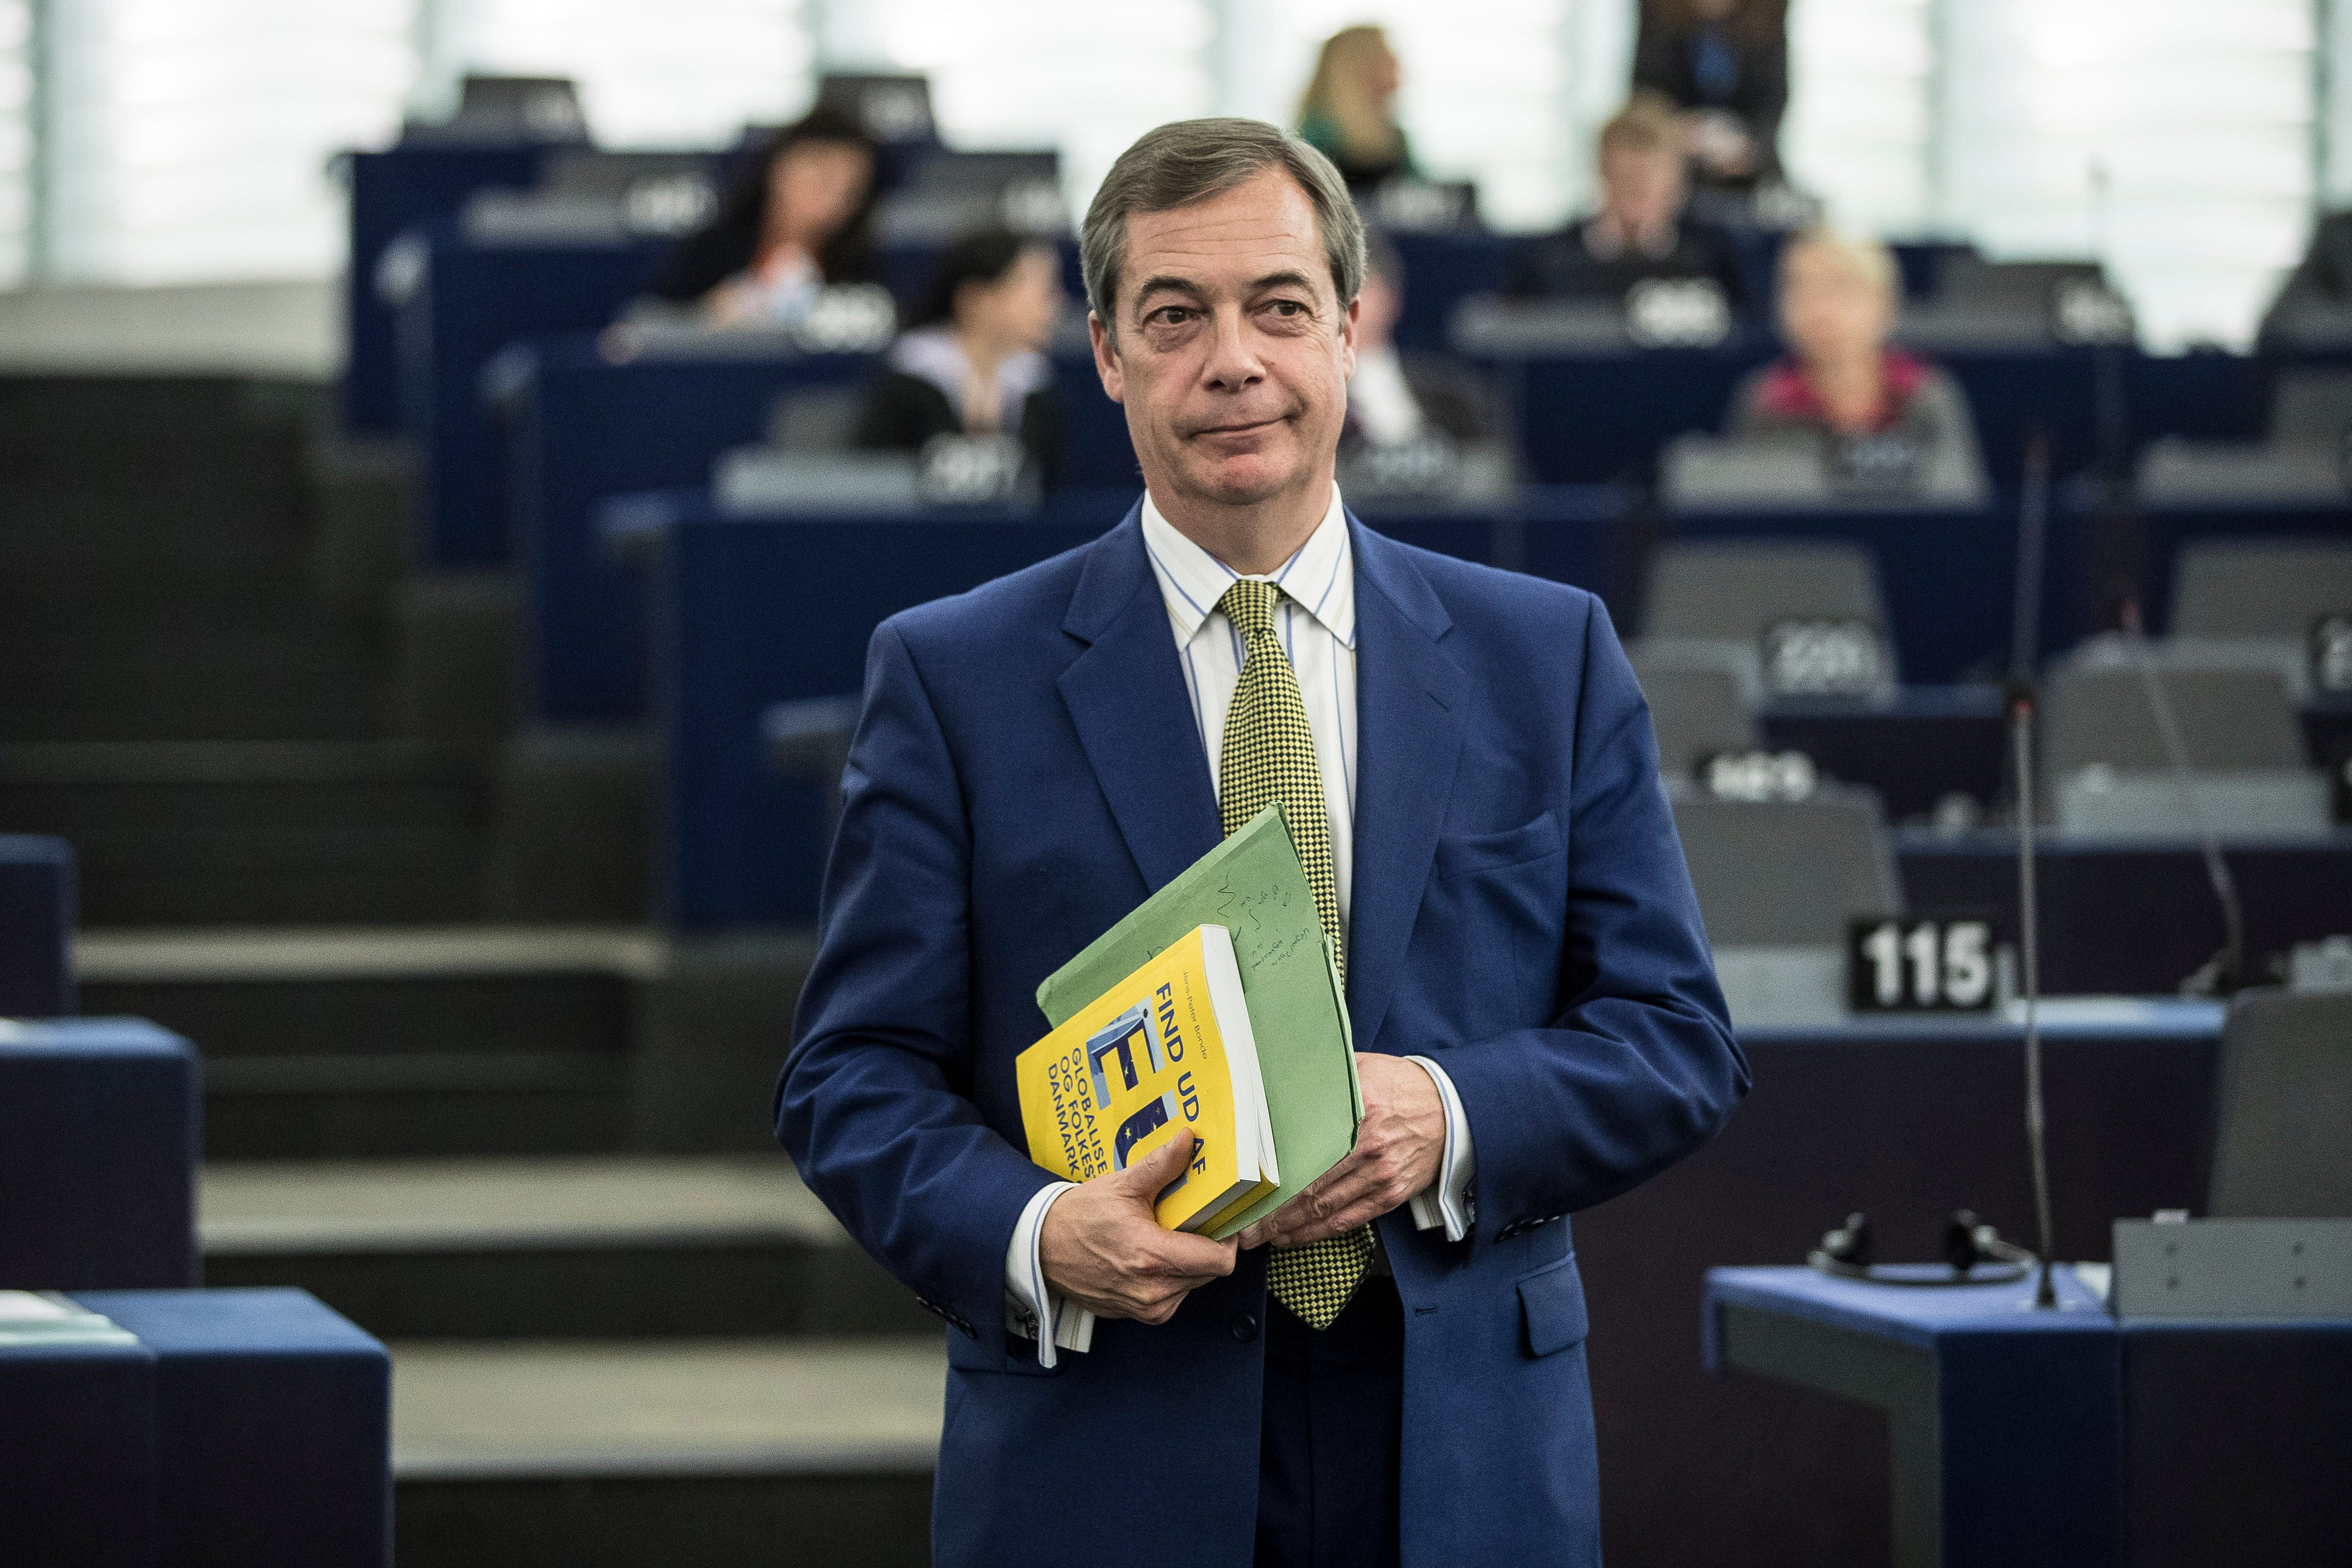 Former leader Nigel Farage quits UKIP